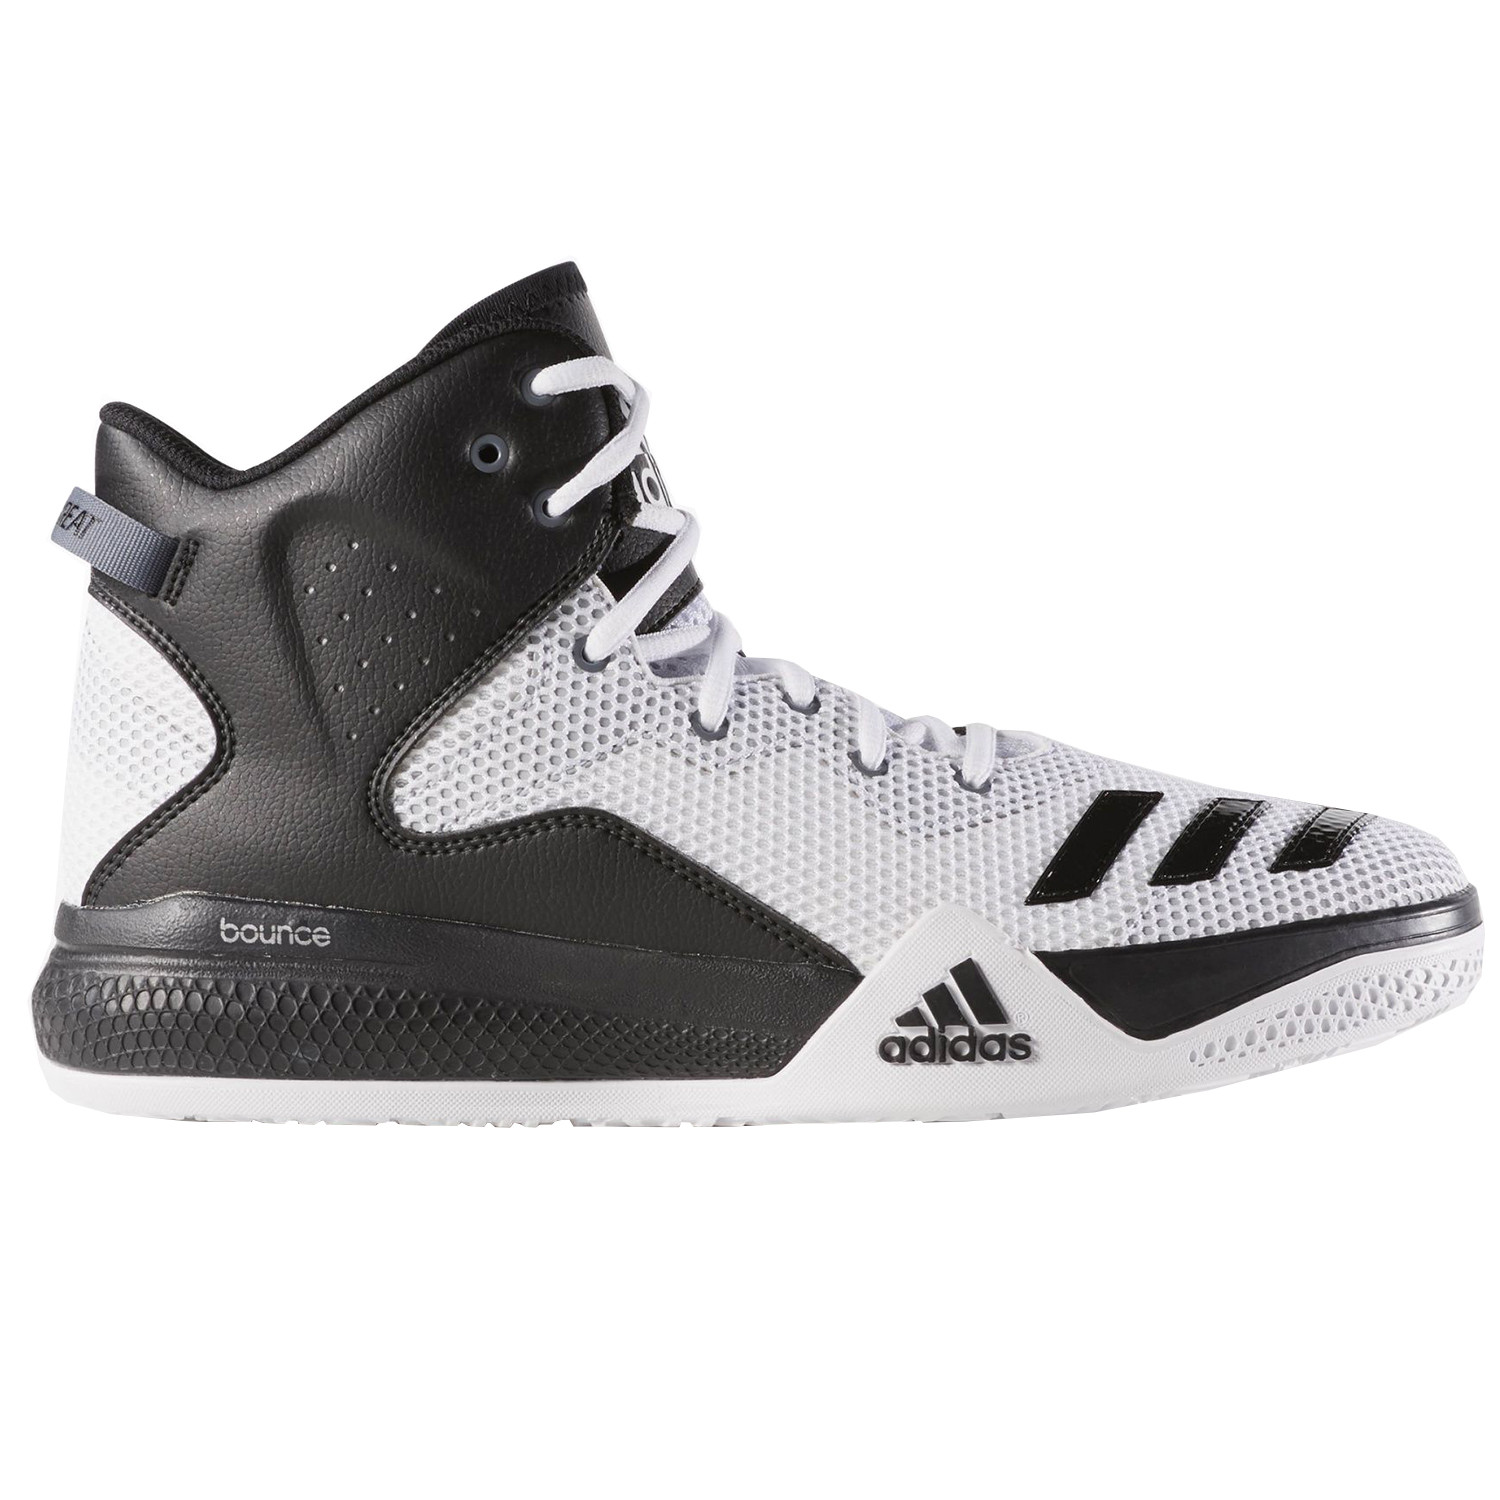 Chaussure Bball Mid Pas Chaussures Homme Cher De Adidas Blanc Dt qATxS4Hx